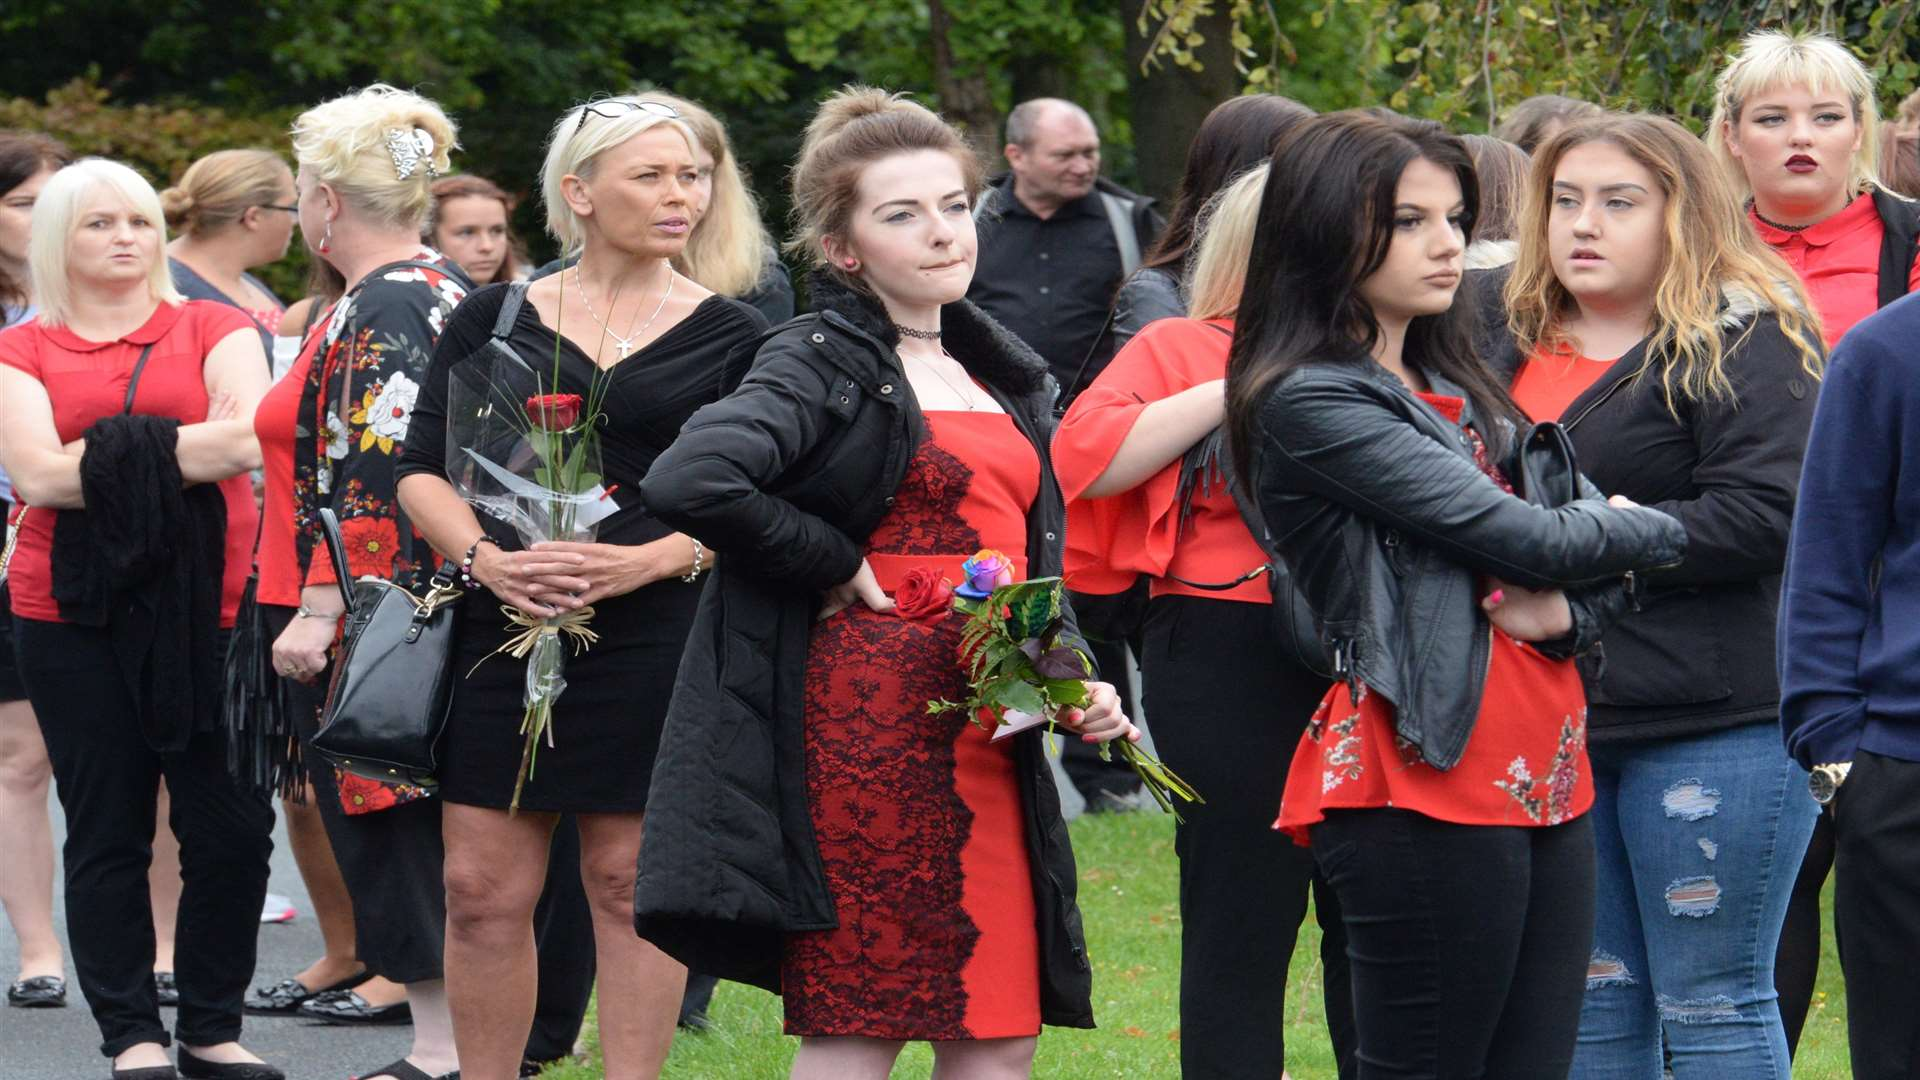 Friends gather for Taiyah's funeral